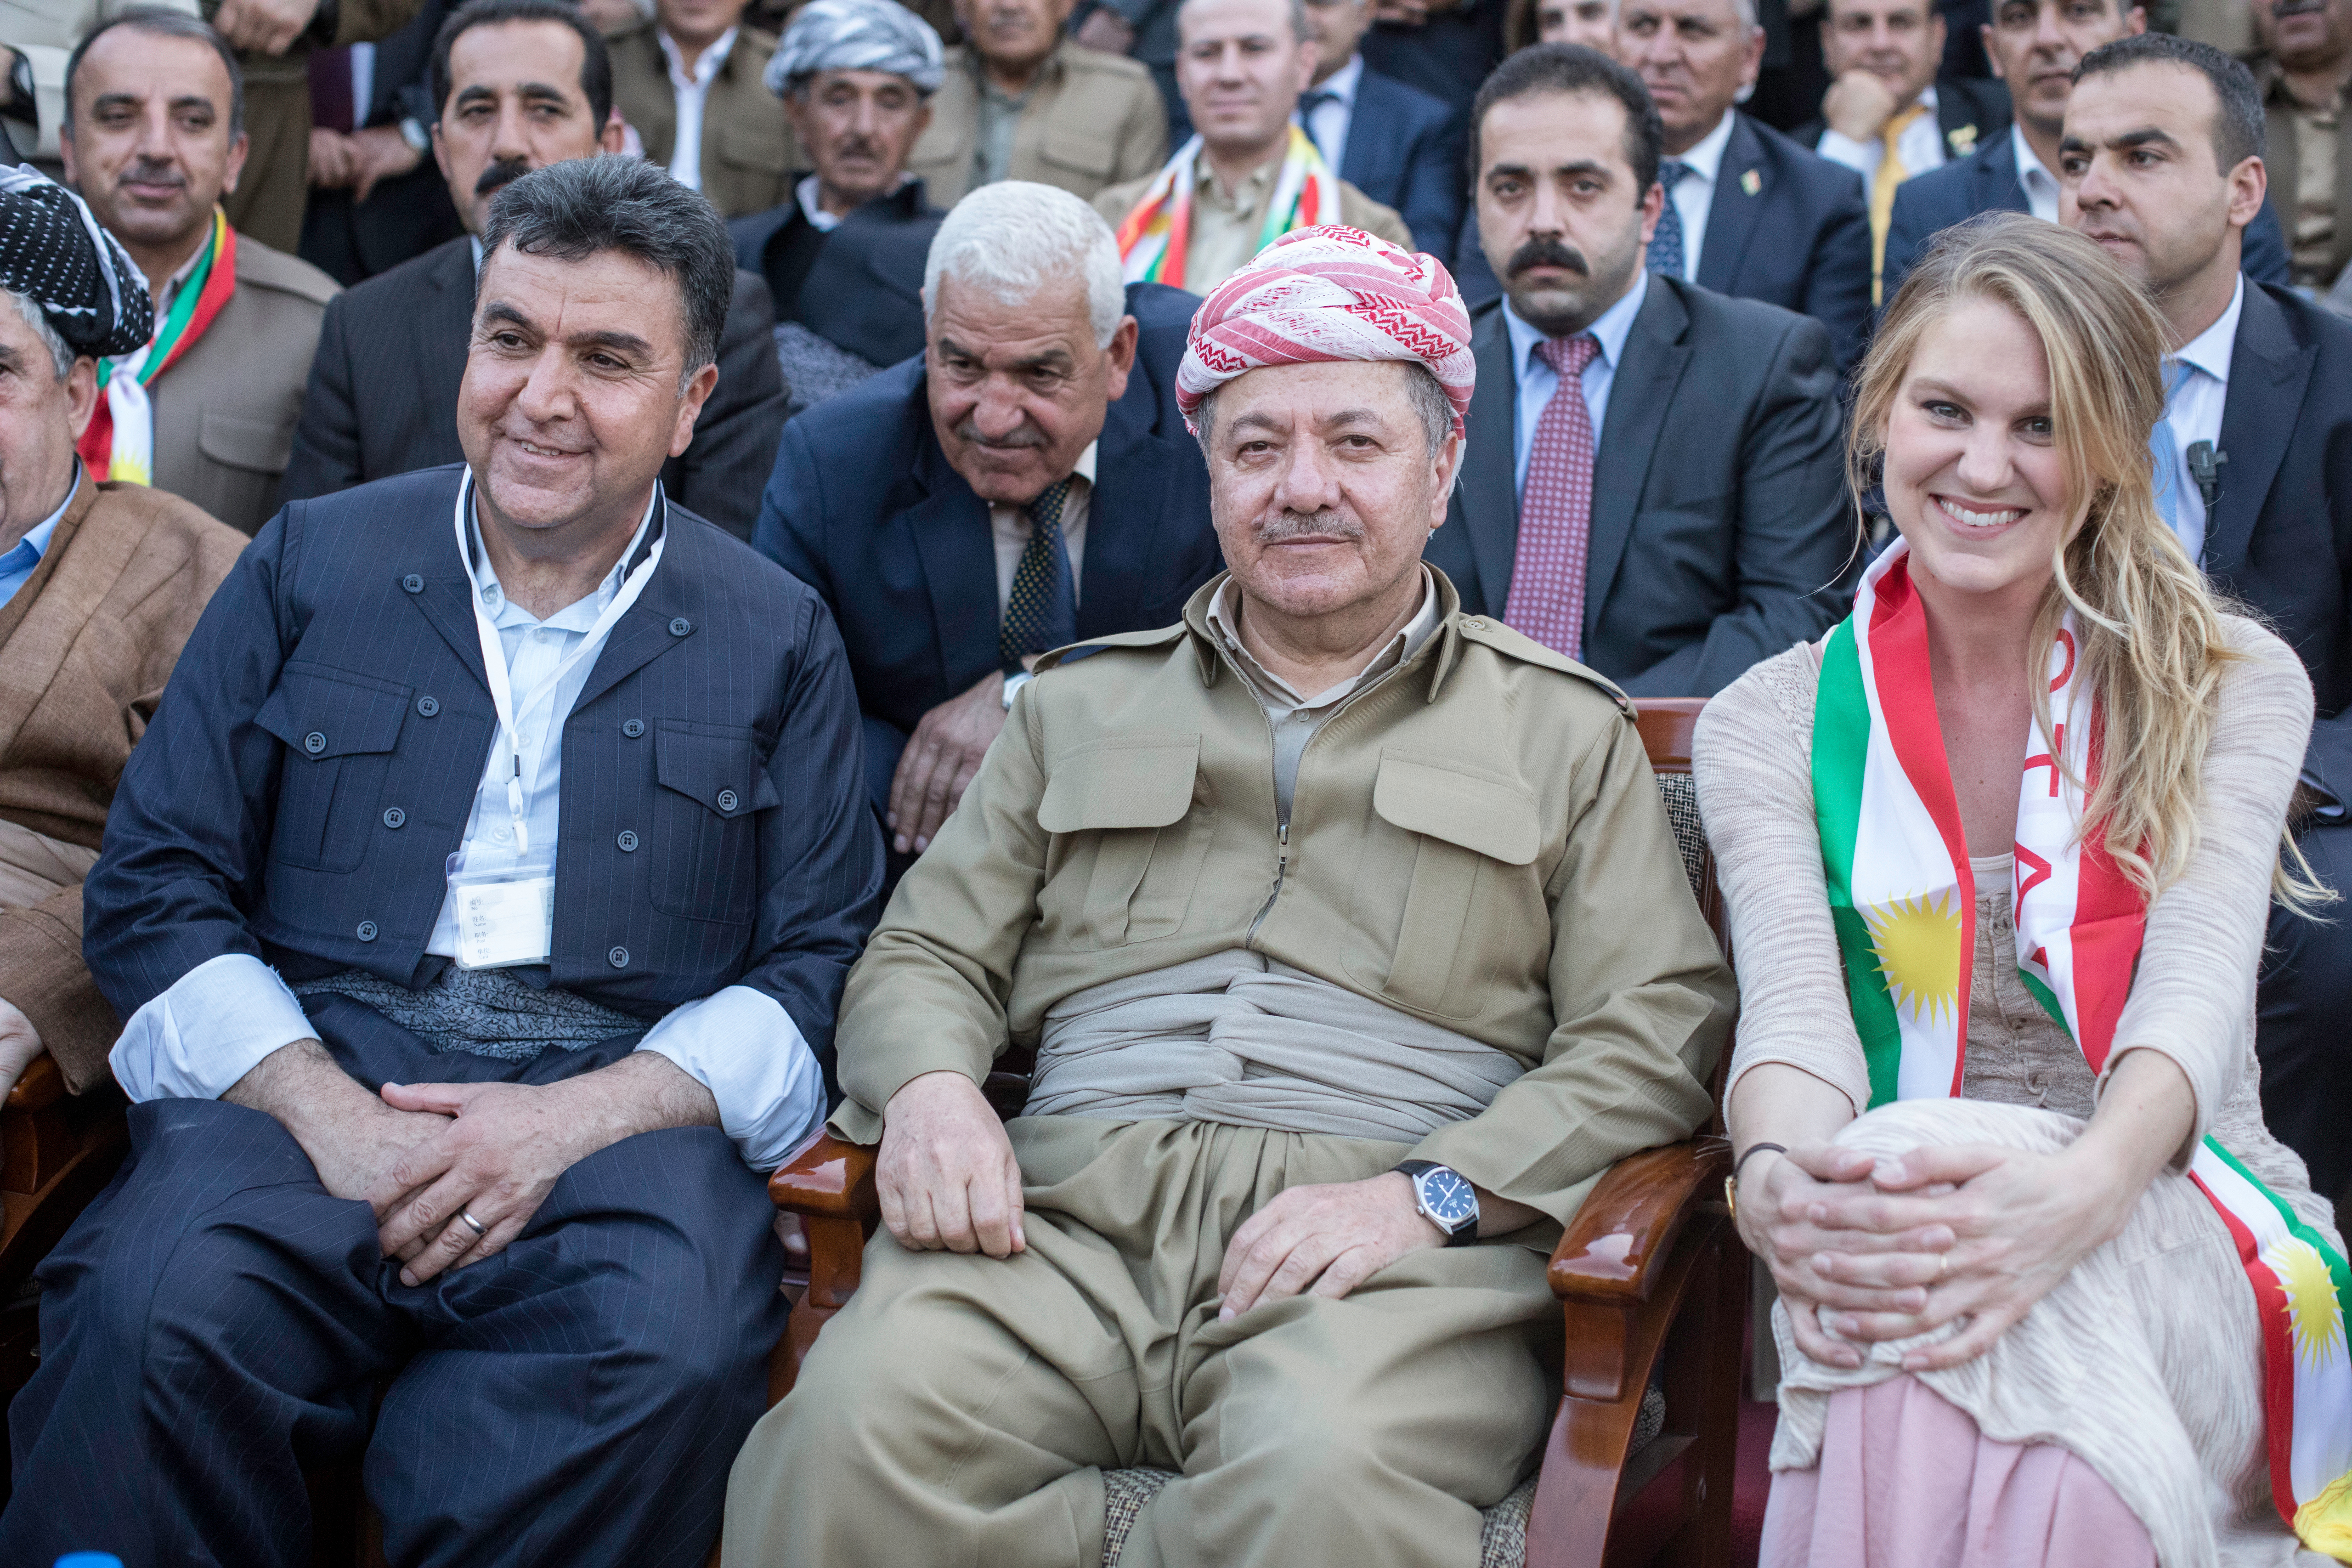 Parks with then President of Kurdistan Masoud Bargain (center) and Mayor Kak Krmanj of Soran at Soran University's soccer stadium eight days before Iraqi Kurdistan's vote to negotiate independence from Iraq.